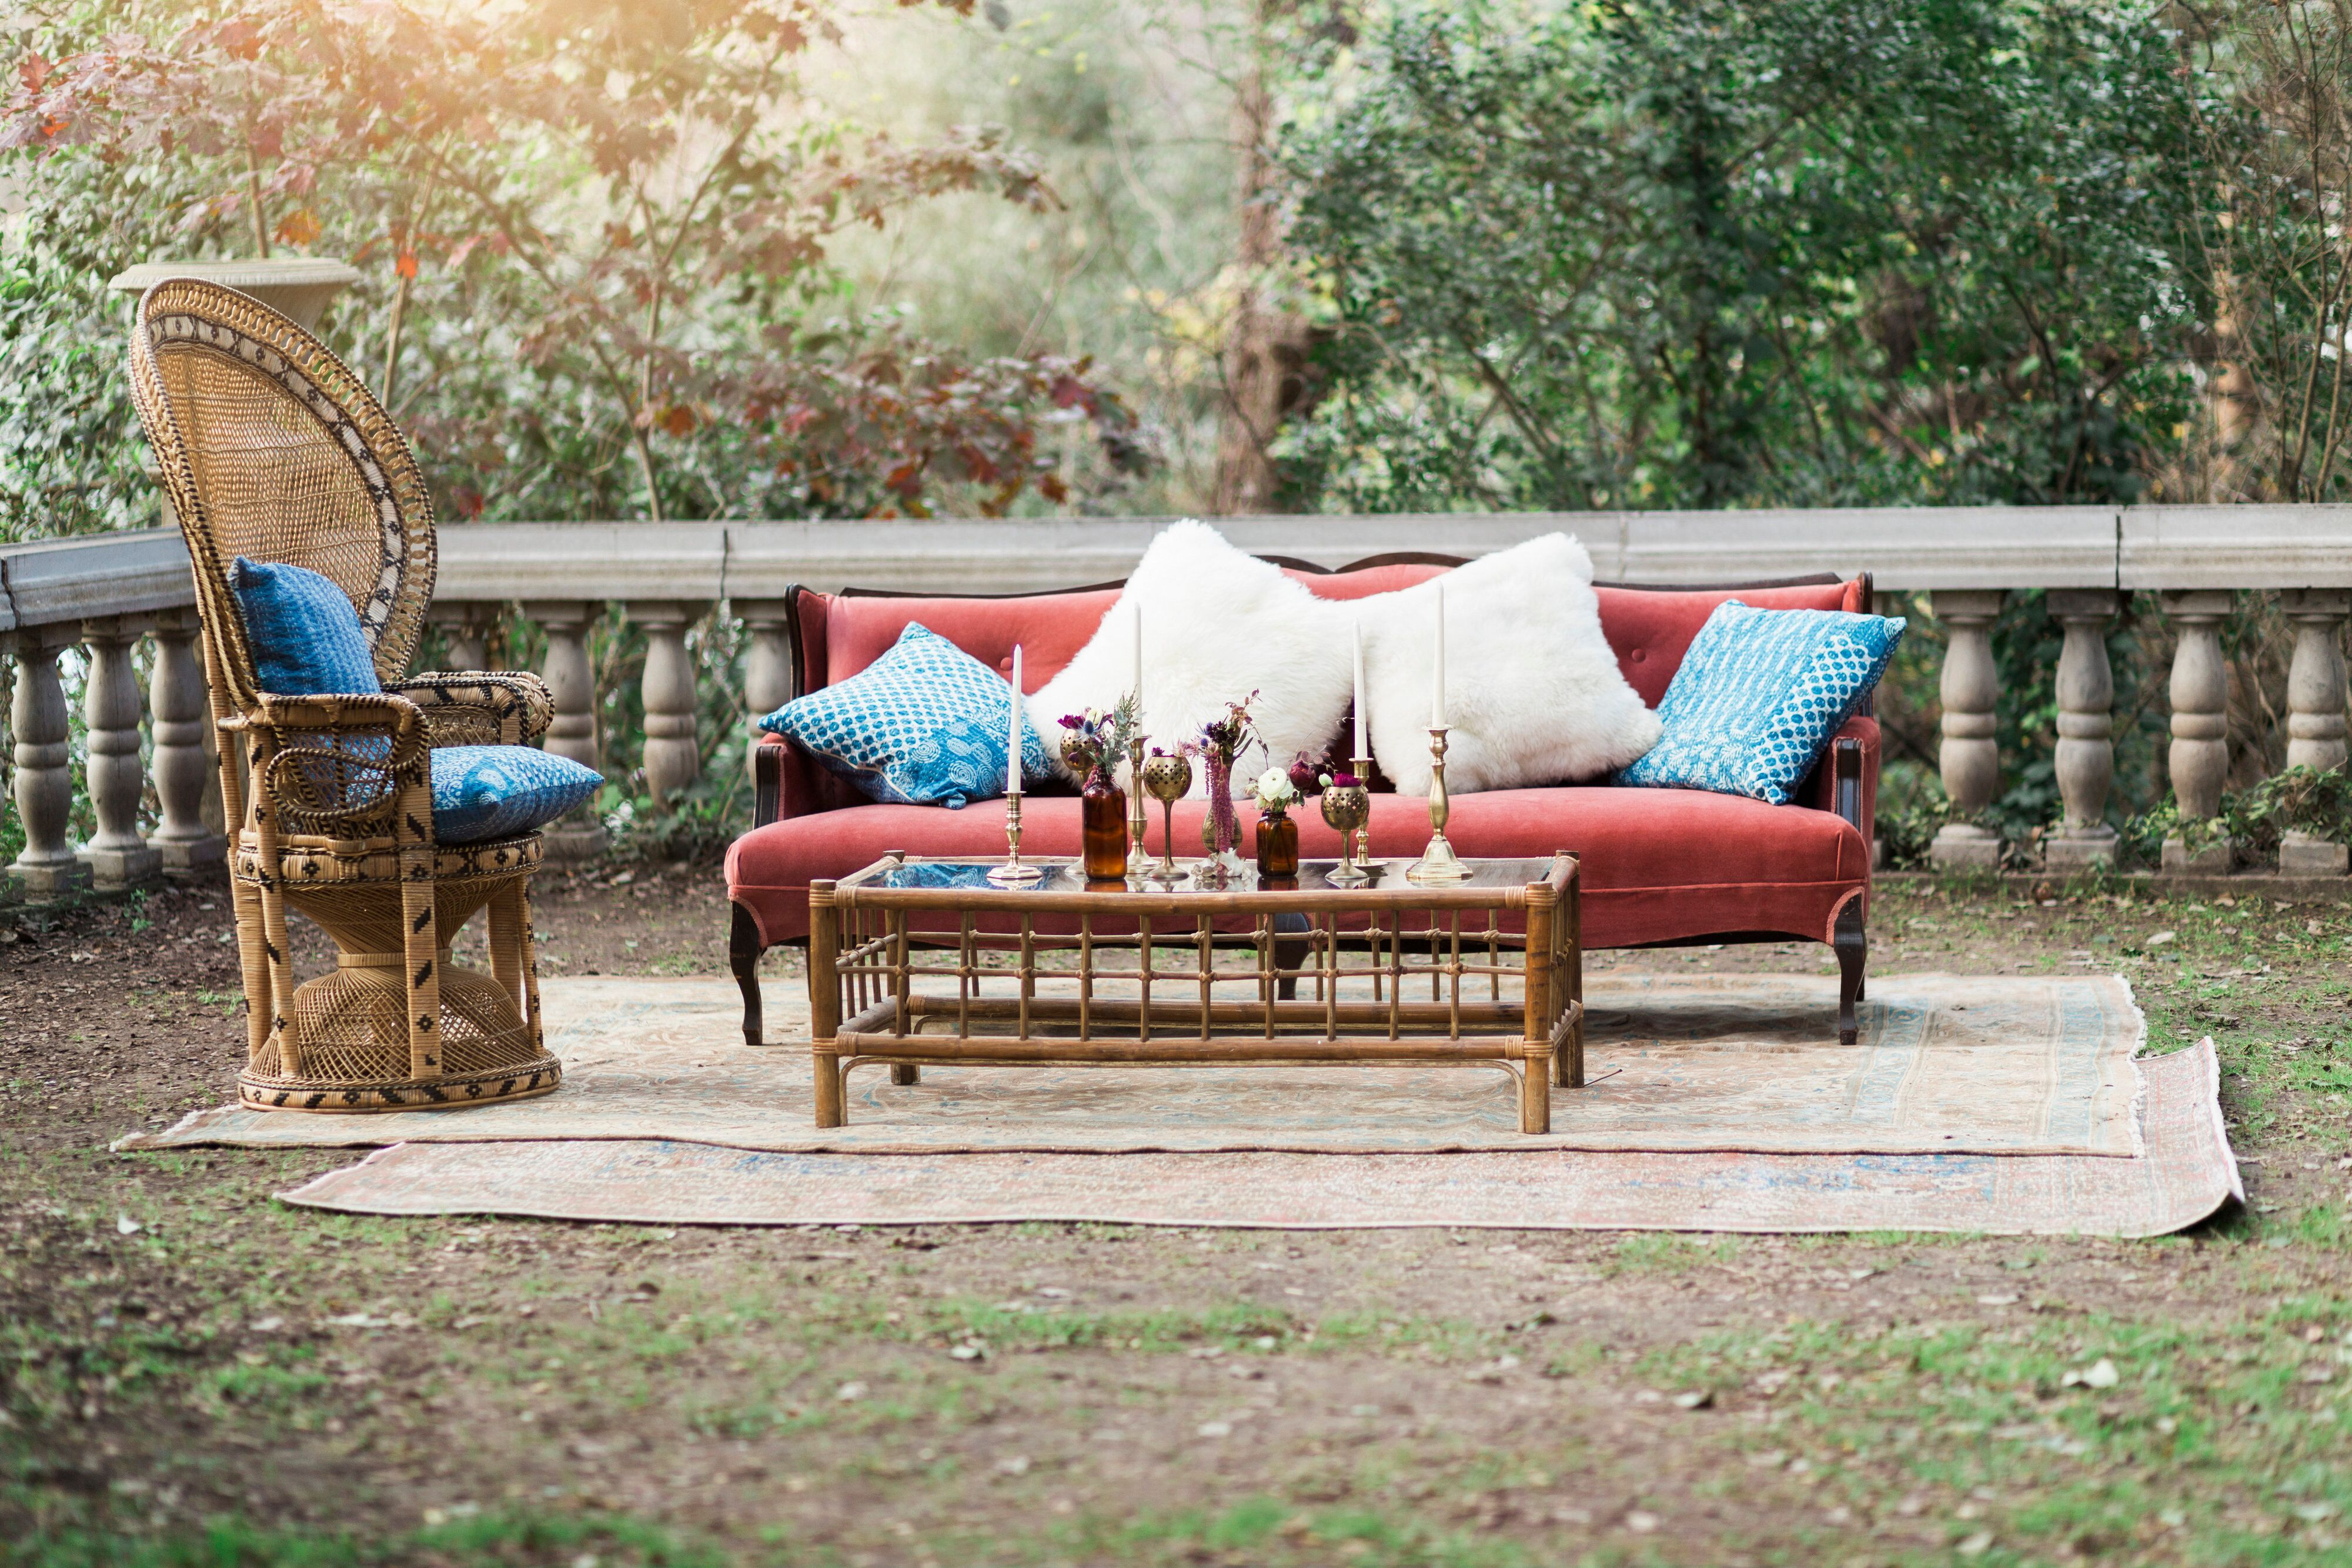 Bohemian Outdoor Bridal Lounge With Peacock Chair And Berry Pink